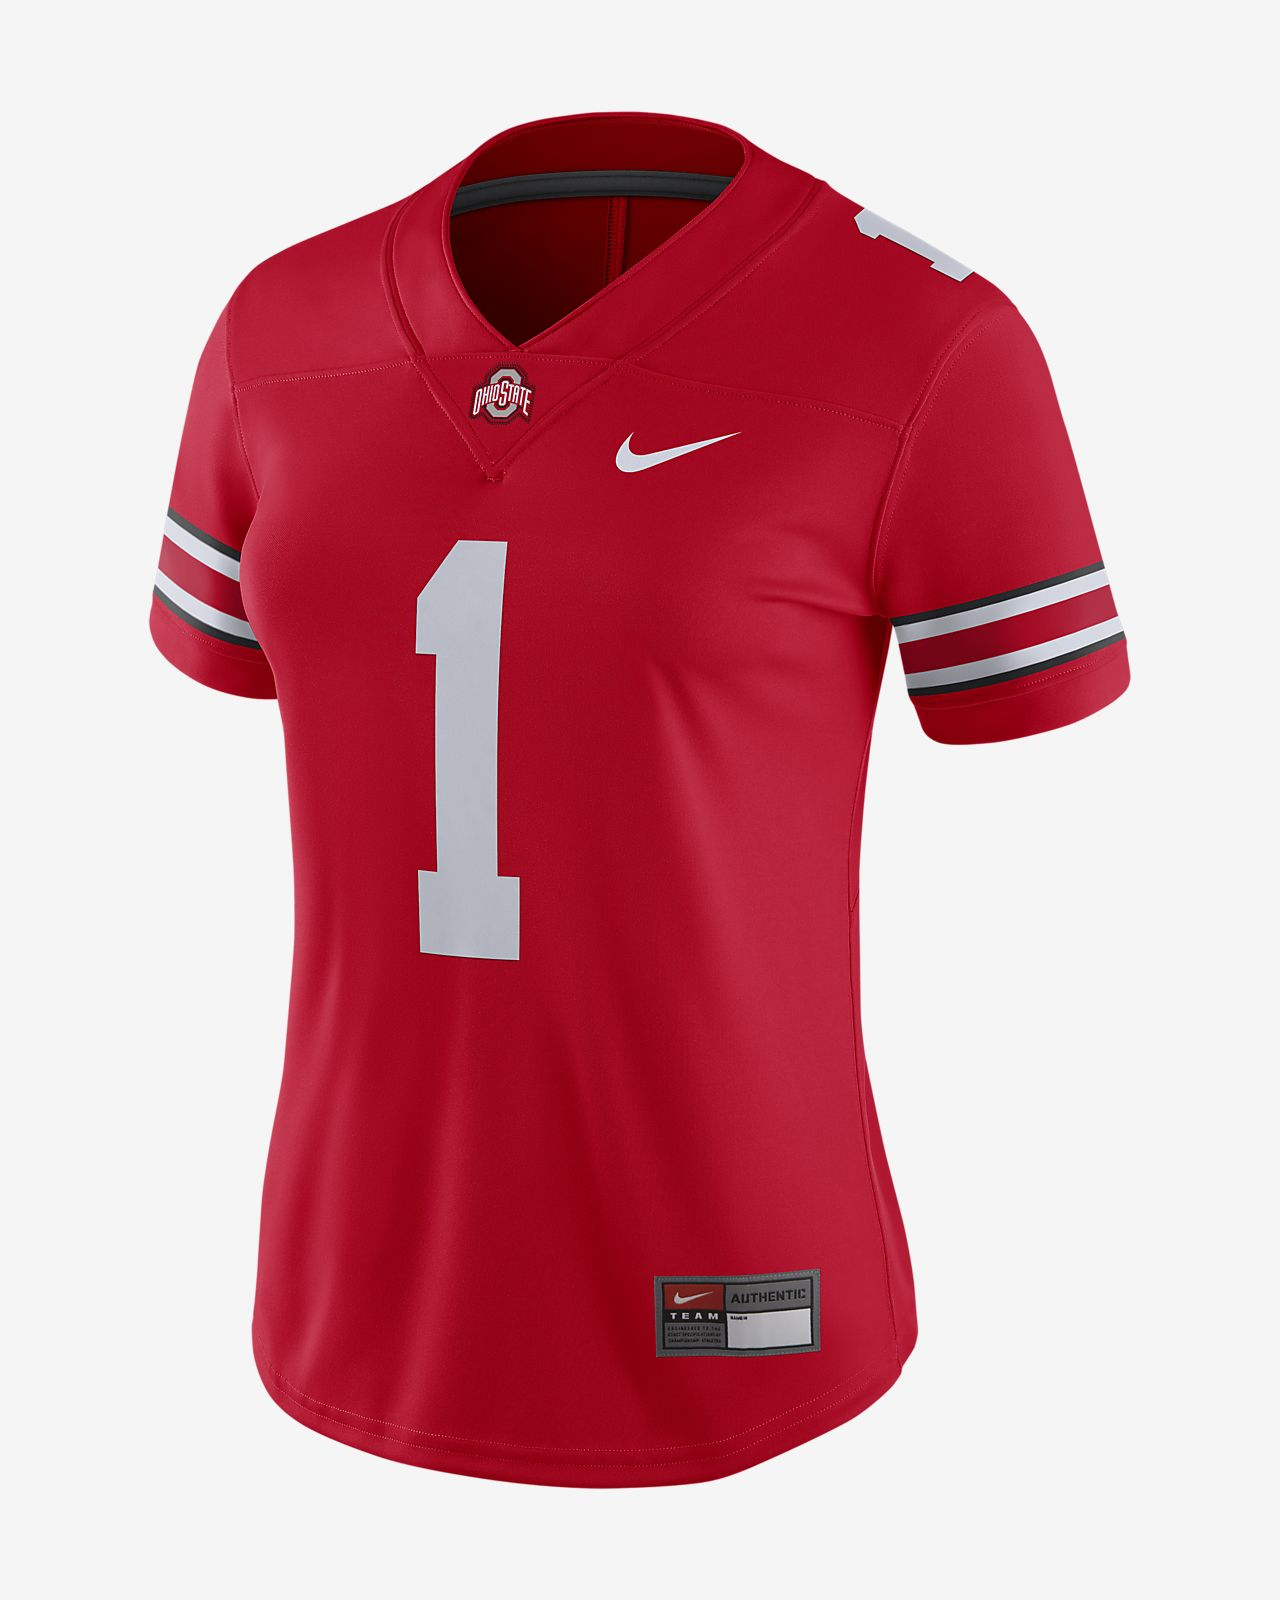 Nike College Dri-FIT Game (Ohio State) Women's Football Jersey